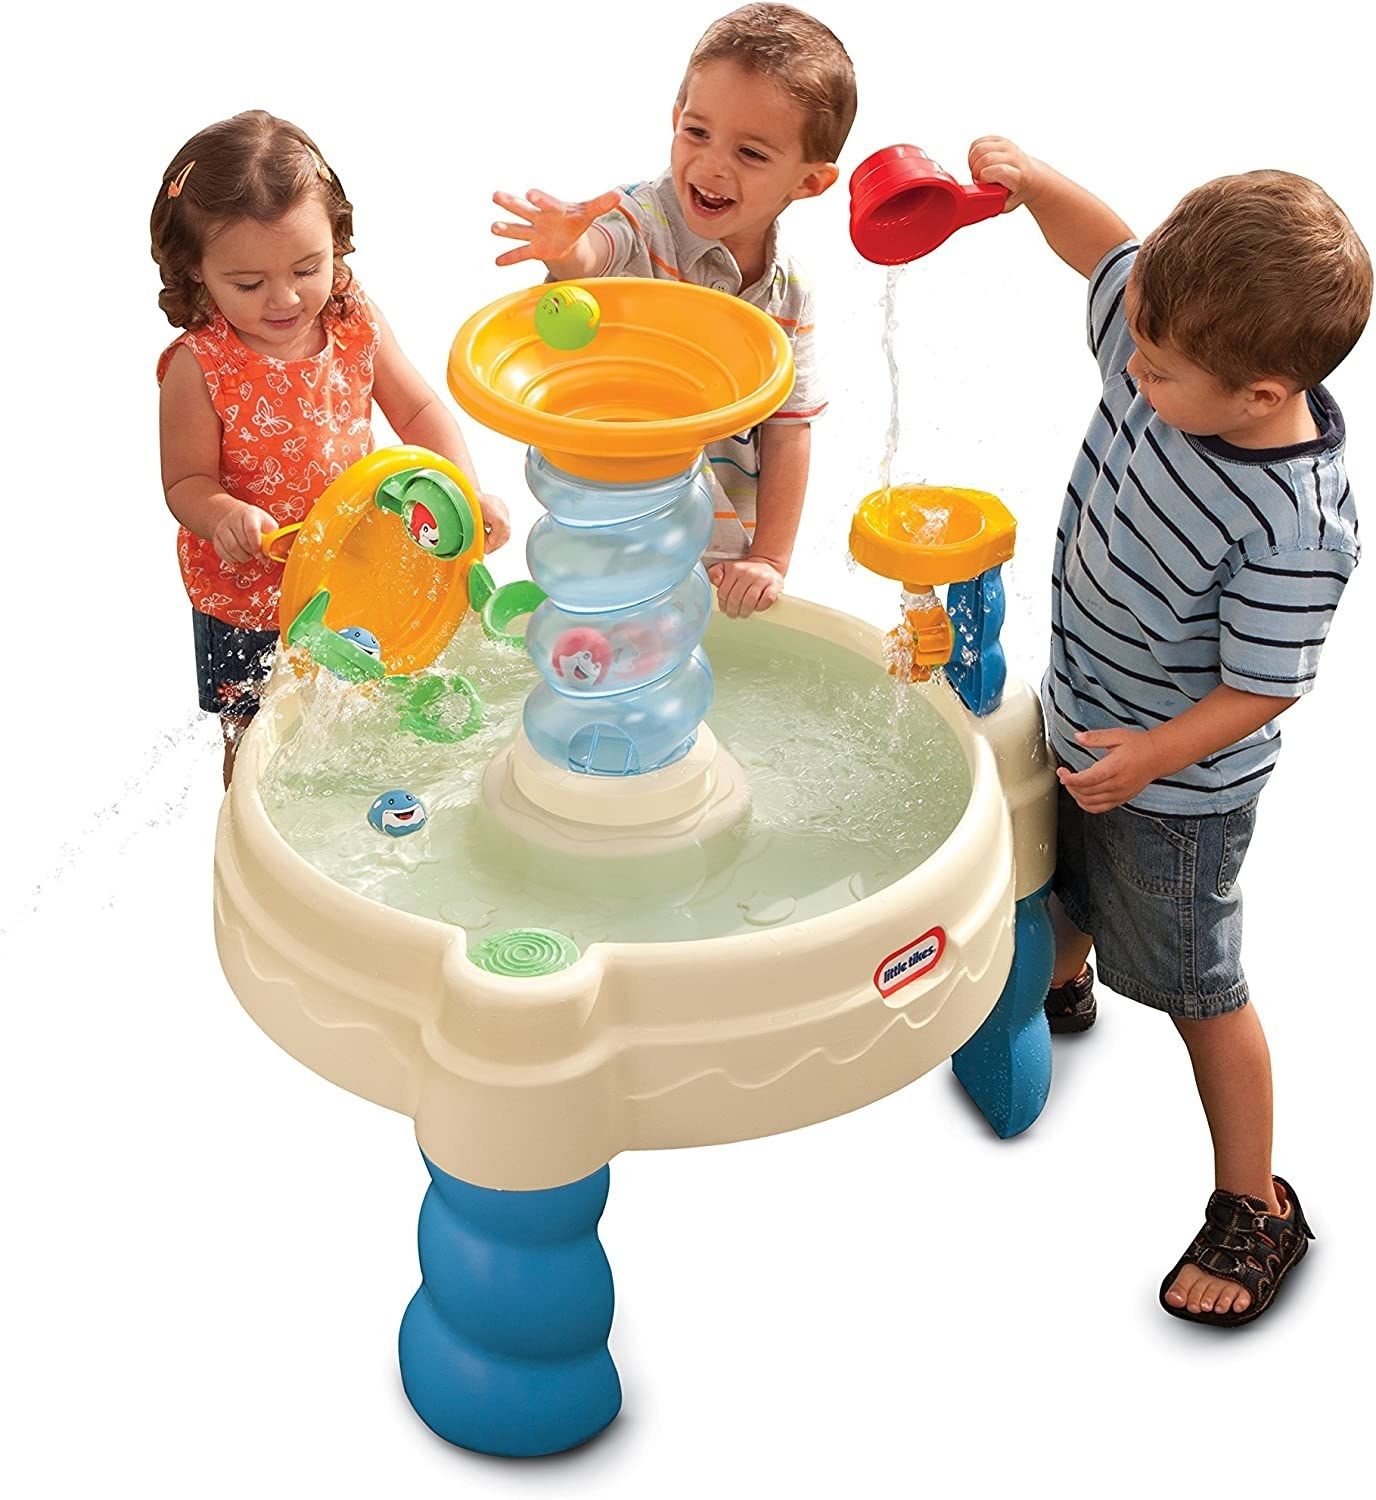 Three kids standing around a play table full of water